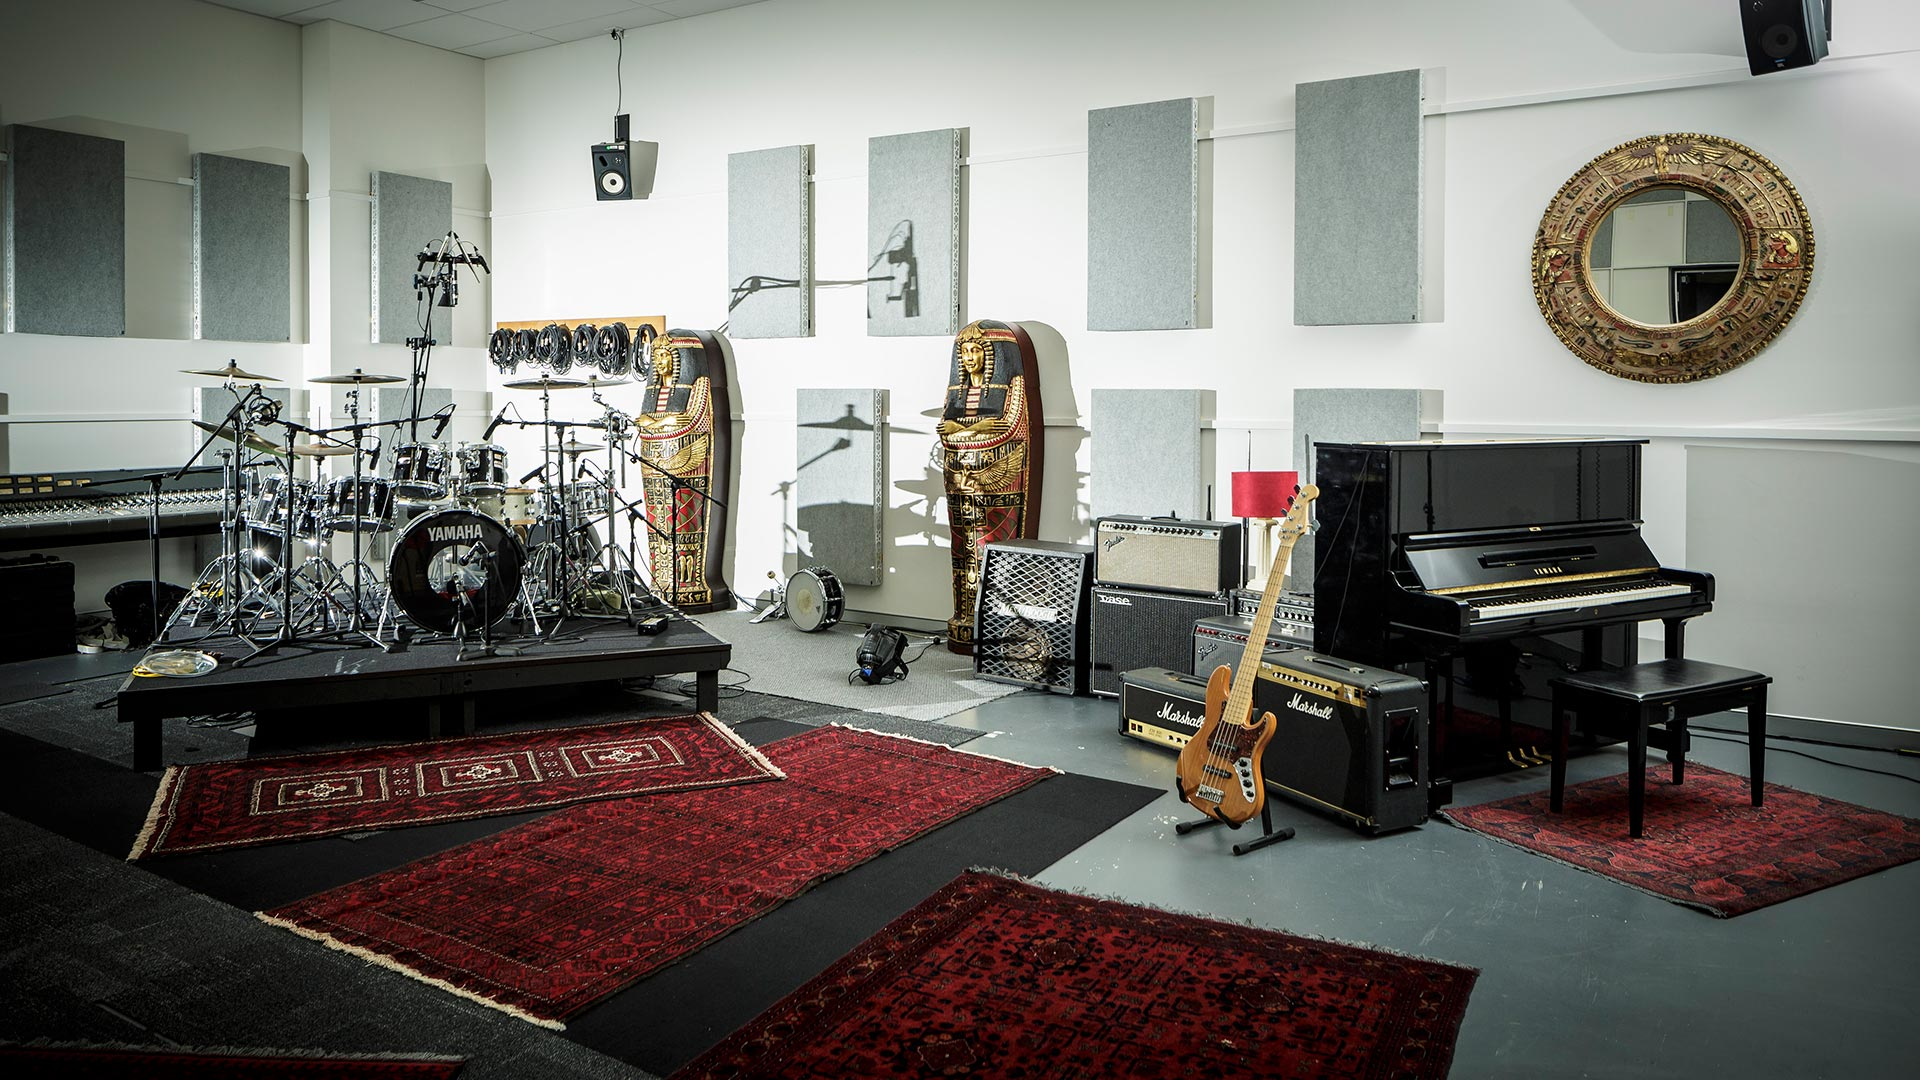 south-bank-facilities-creative-spaces-music-and-recording-studios-01.jpg